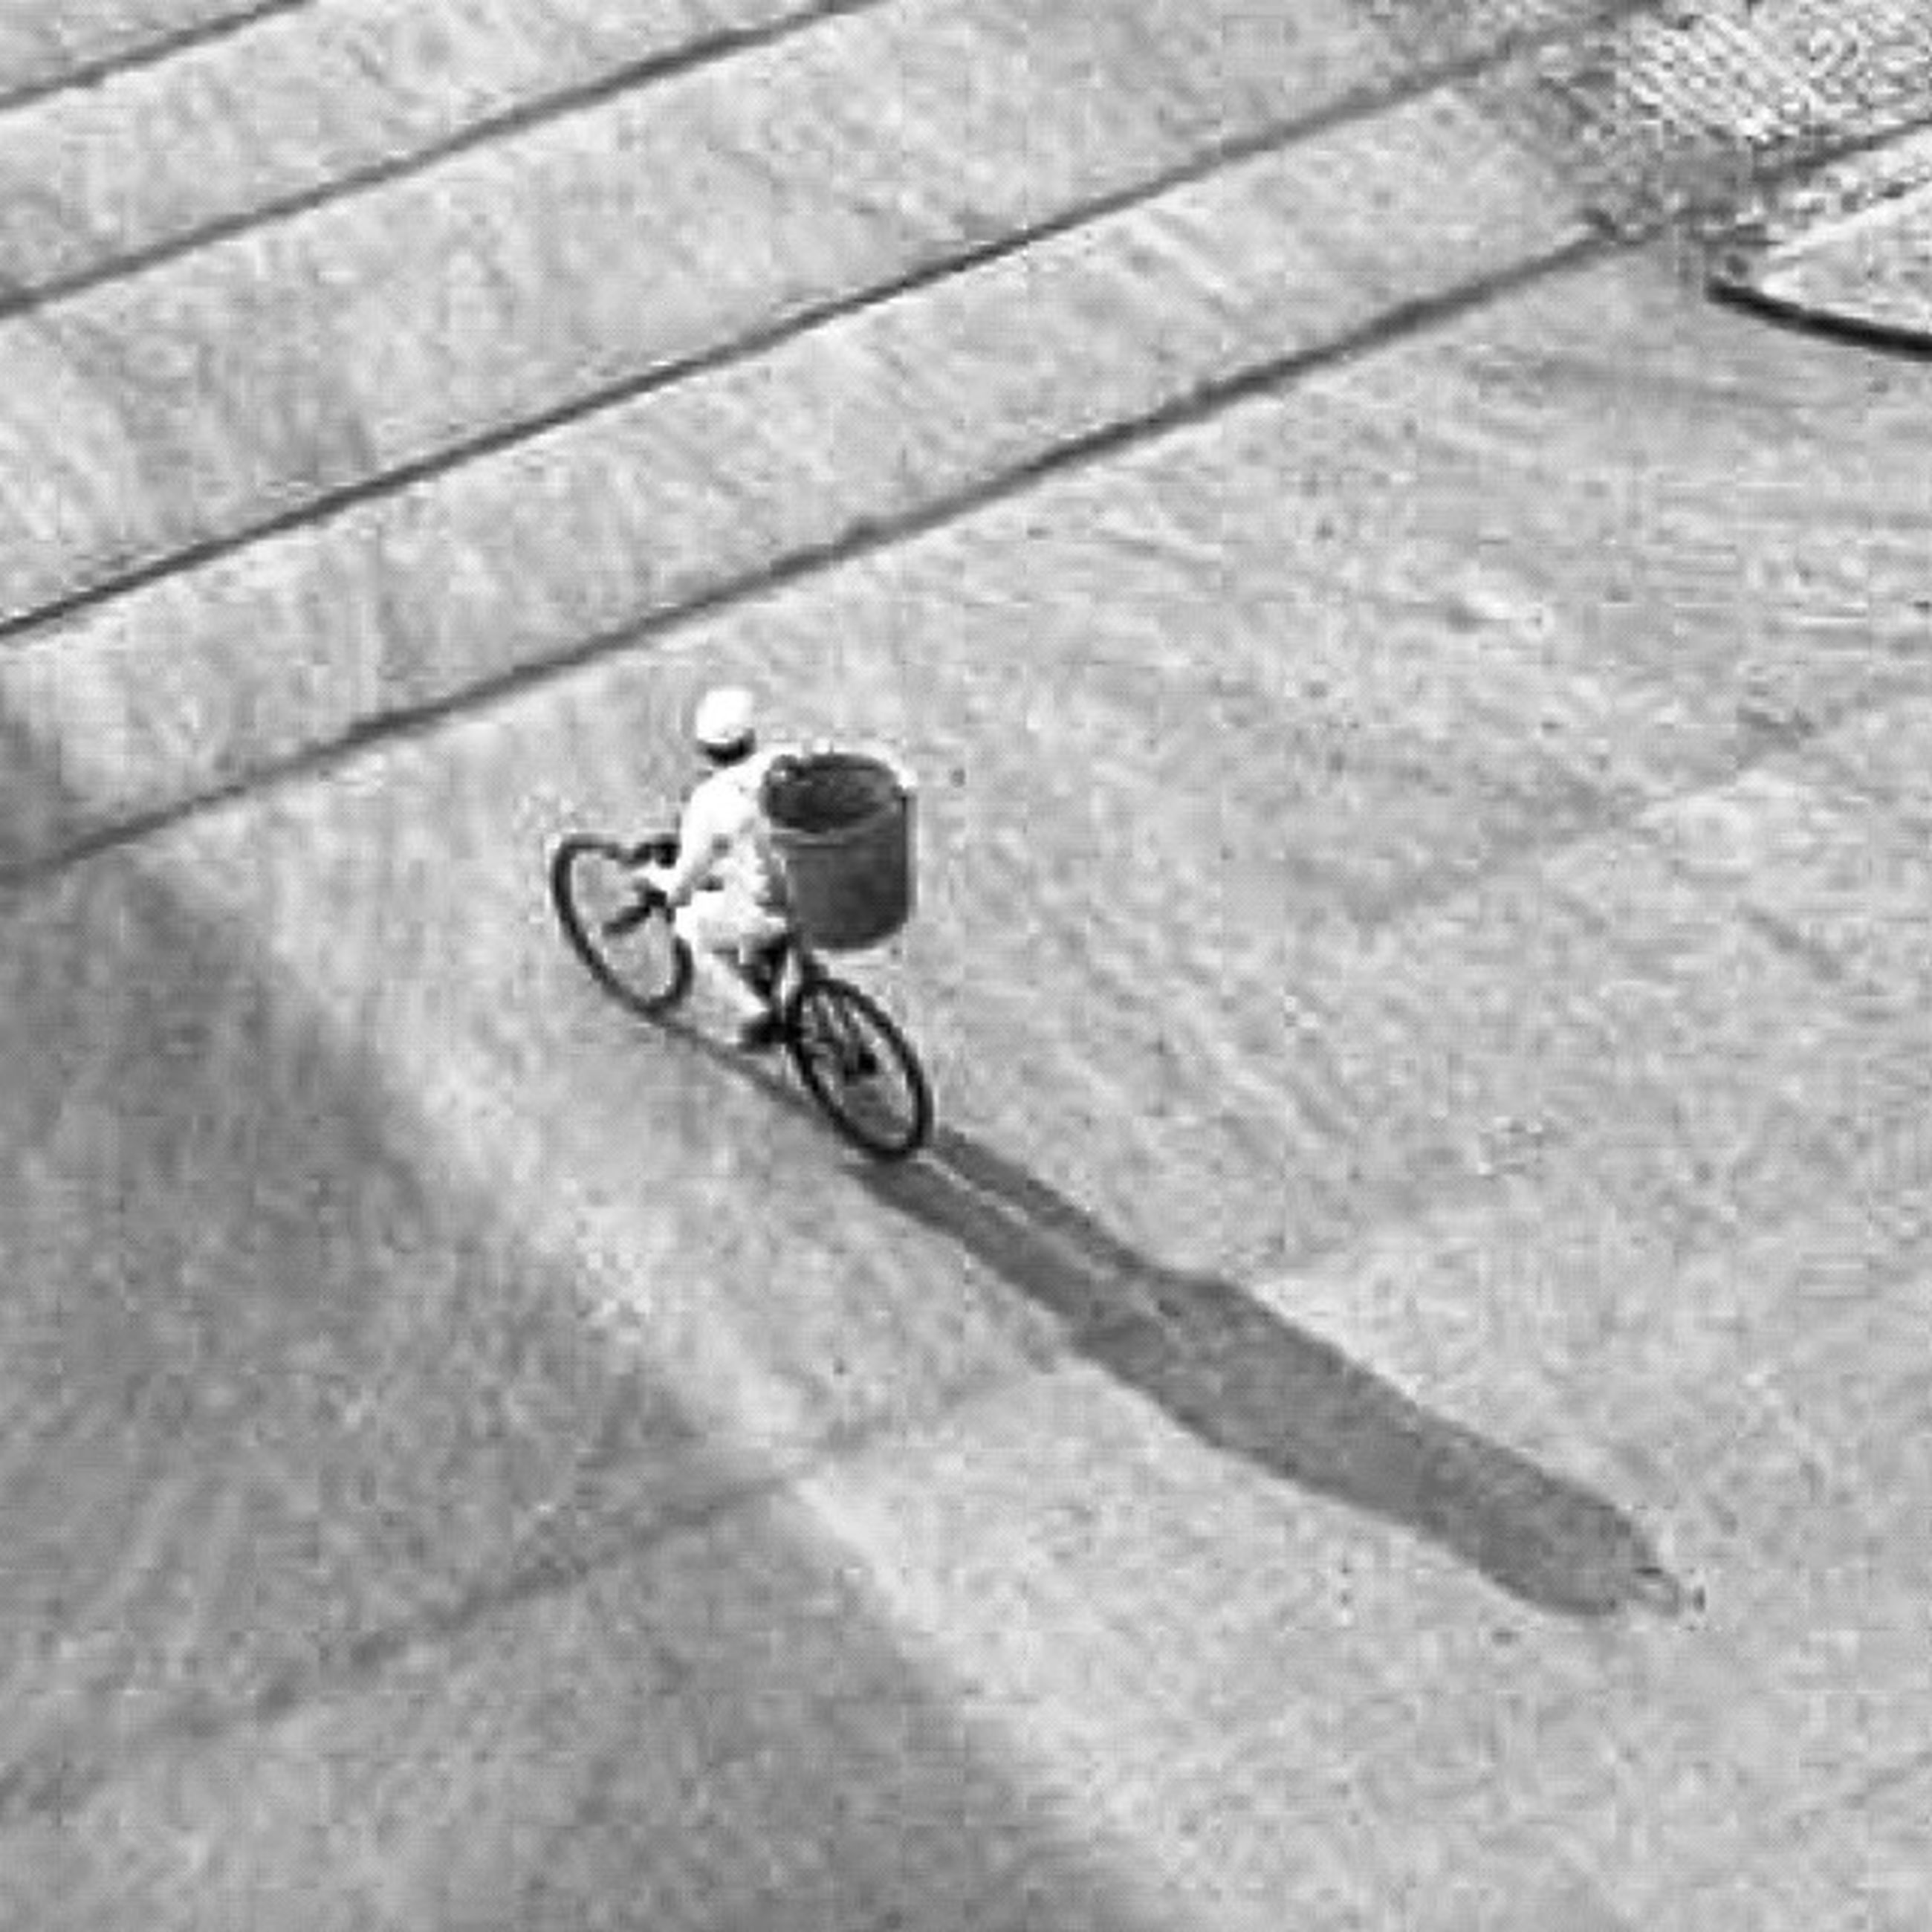 bicycle, transportation, riding, lifestyles, mode of transport, full length, leisure activity, land vehicle, street, men, cycling, shadow, road, on the move, sunlight, walking, high angle view, outdoors